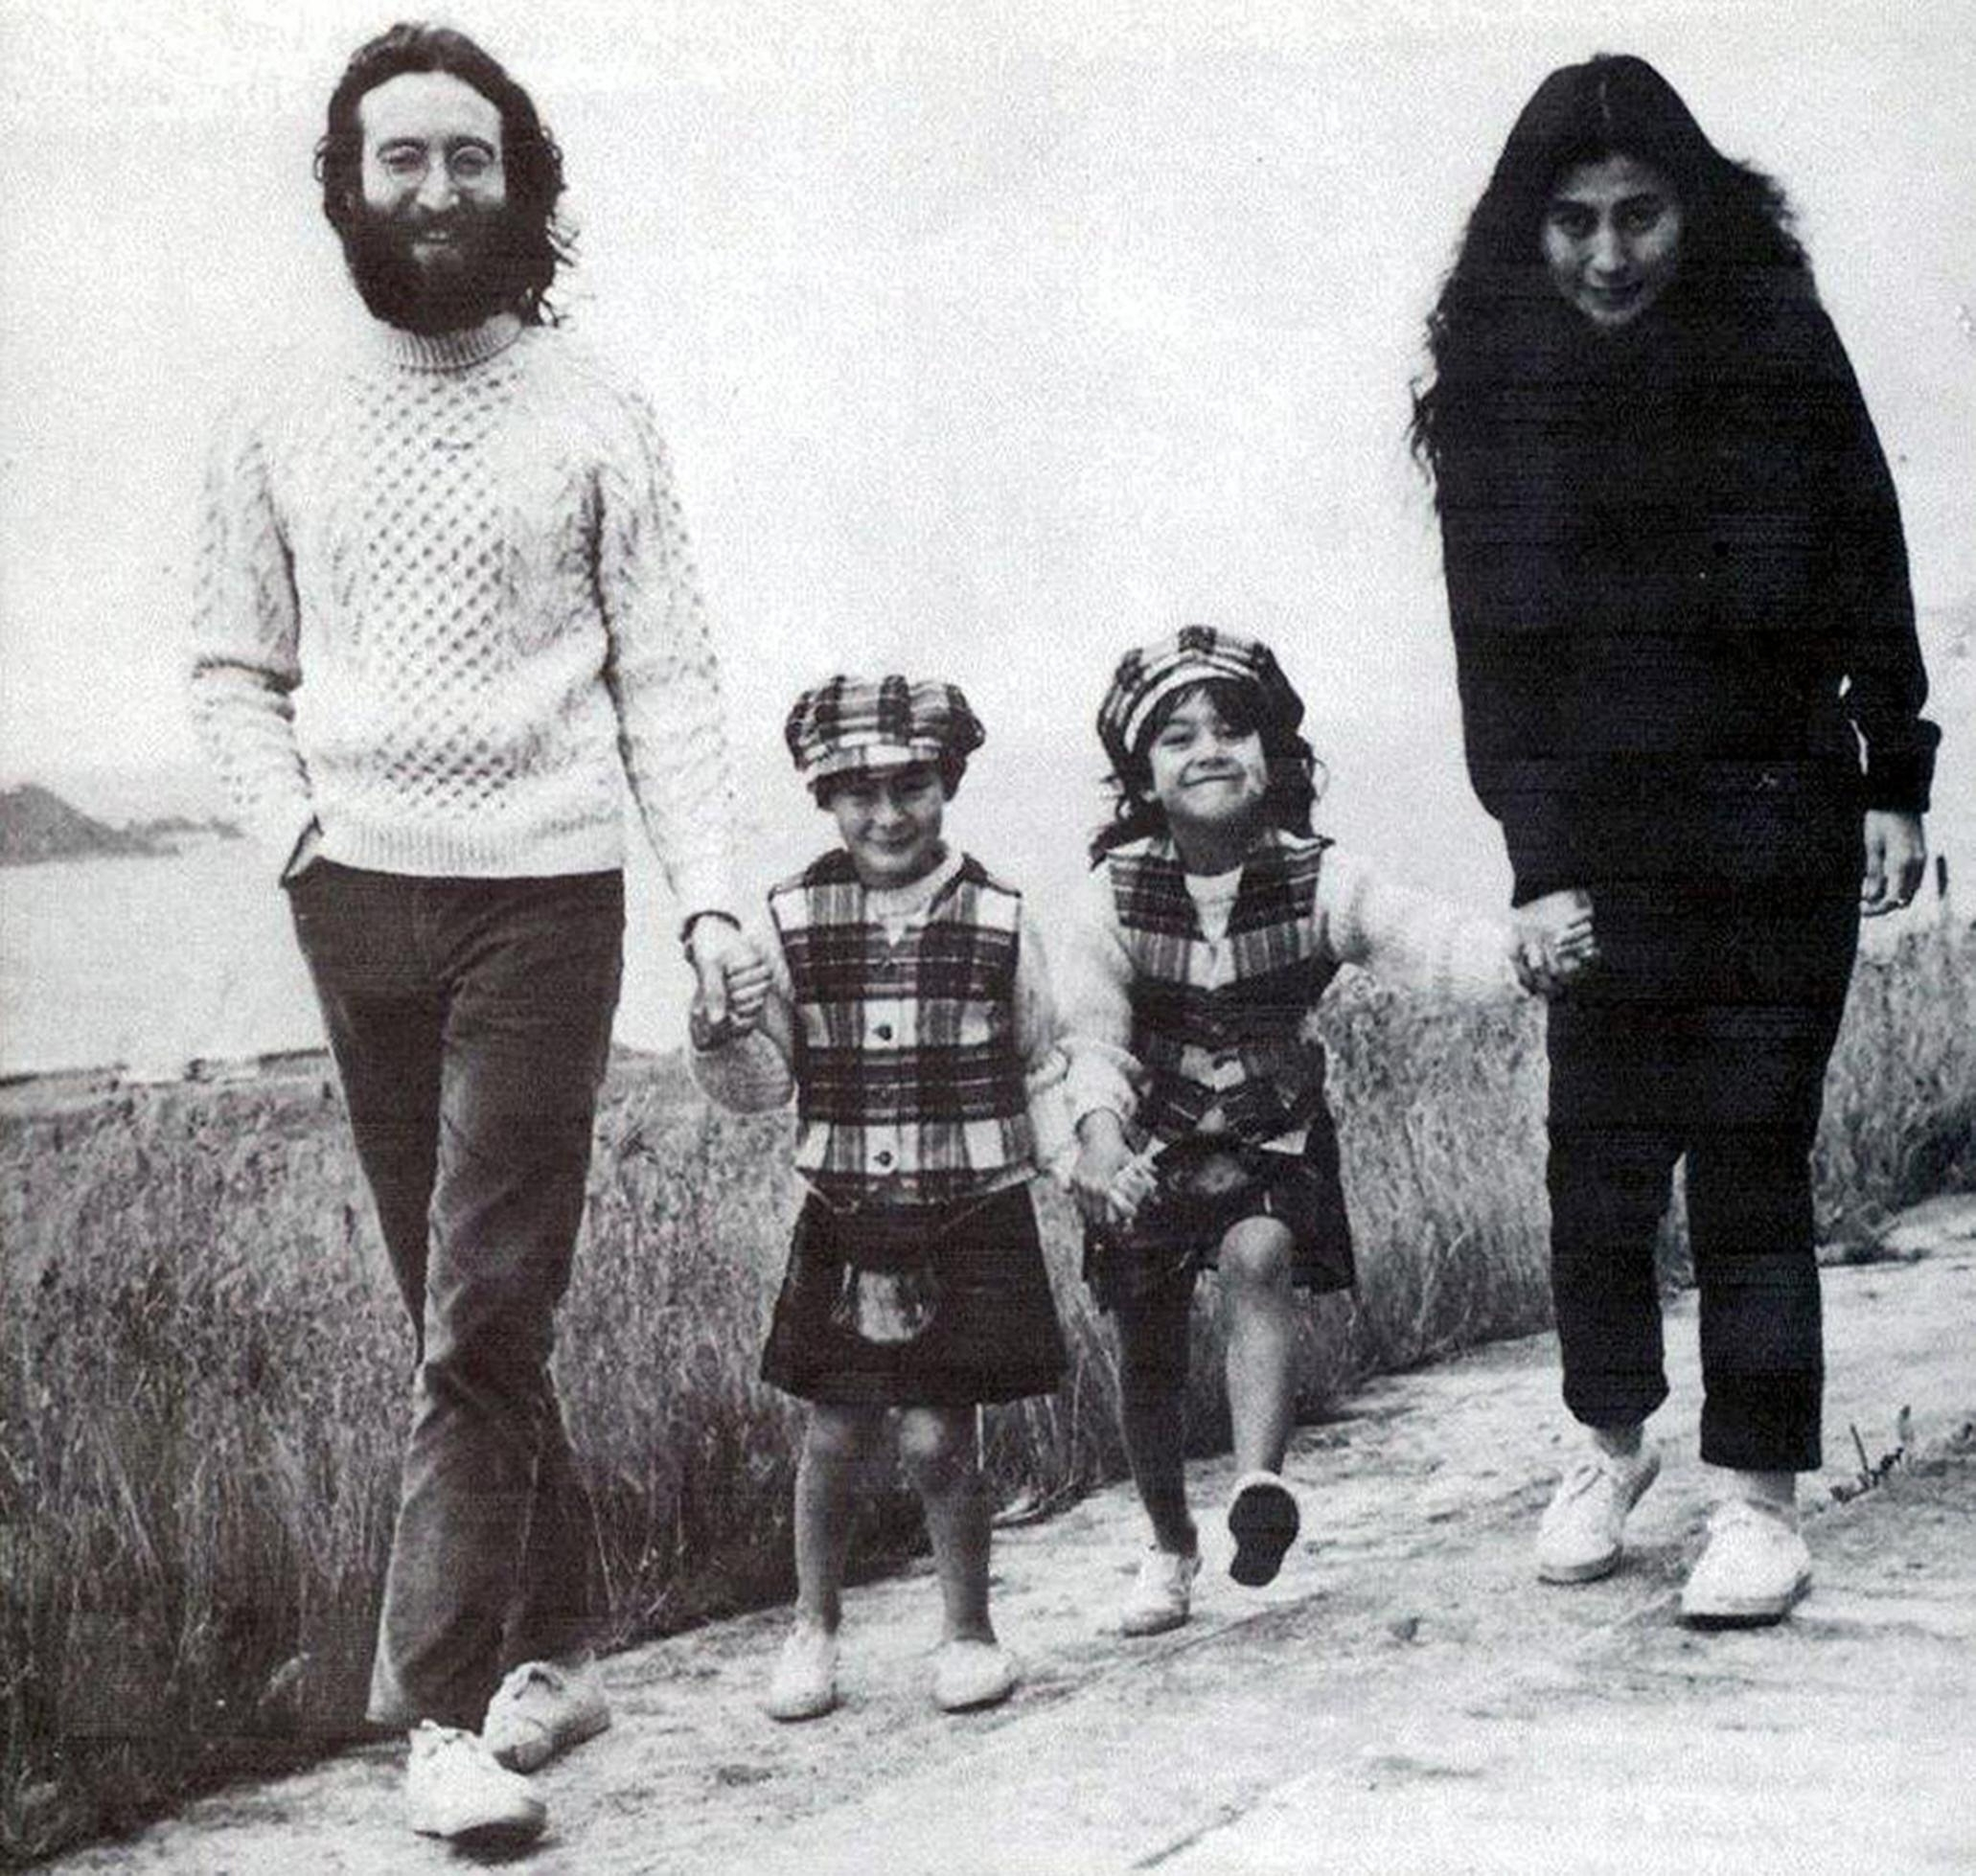 John Lennon, his son Julian, wife Yoko Ono and her daughter, Kyoko, in the village of Durness, Scotland, in 1969. The tiny village where The rock star spent his childhood holidays